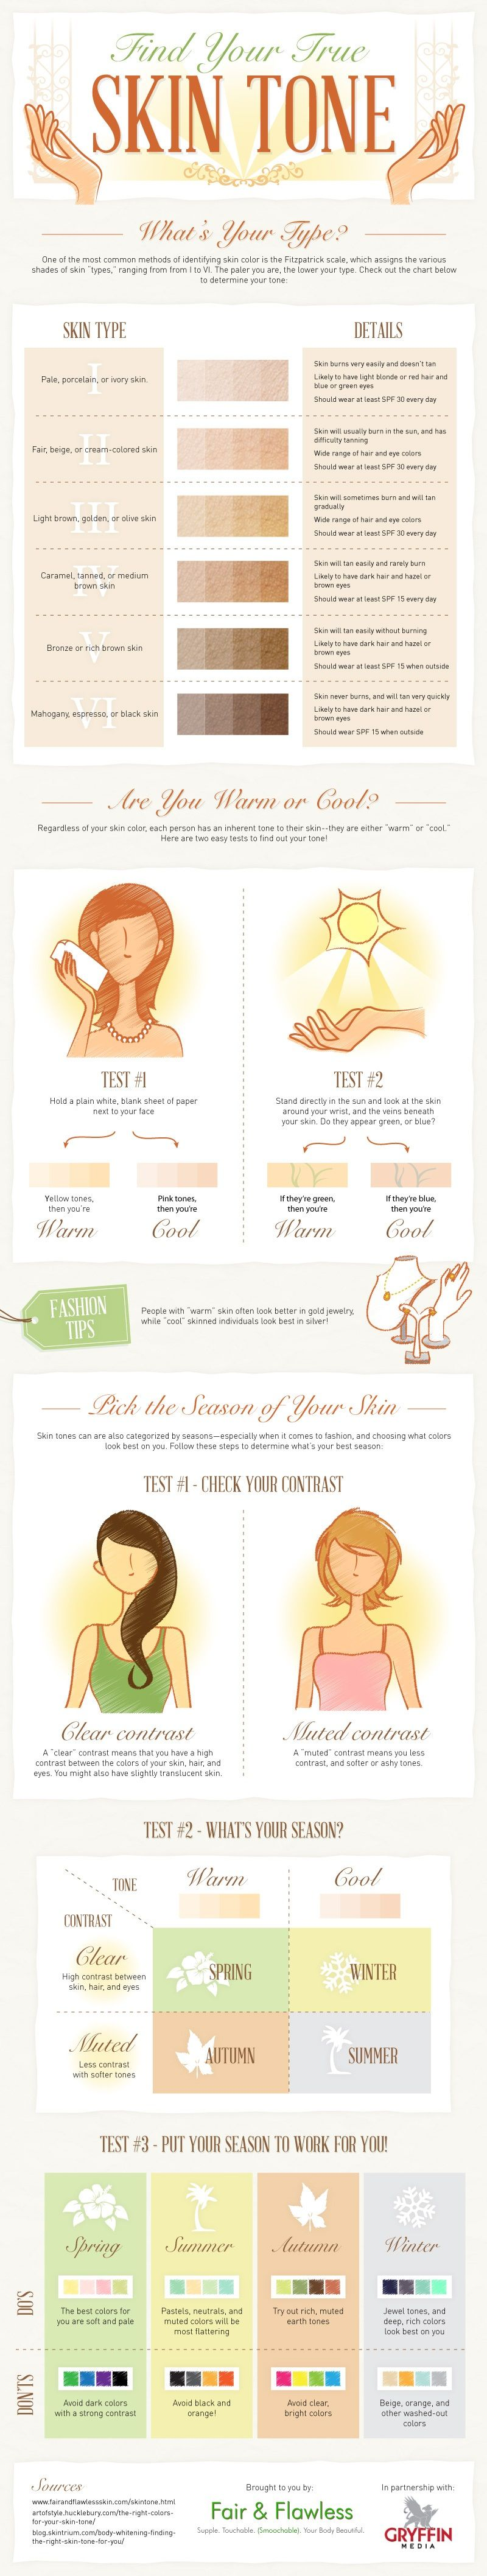 These charts will help you determine your skin tone once and for all